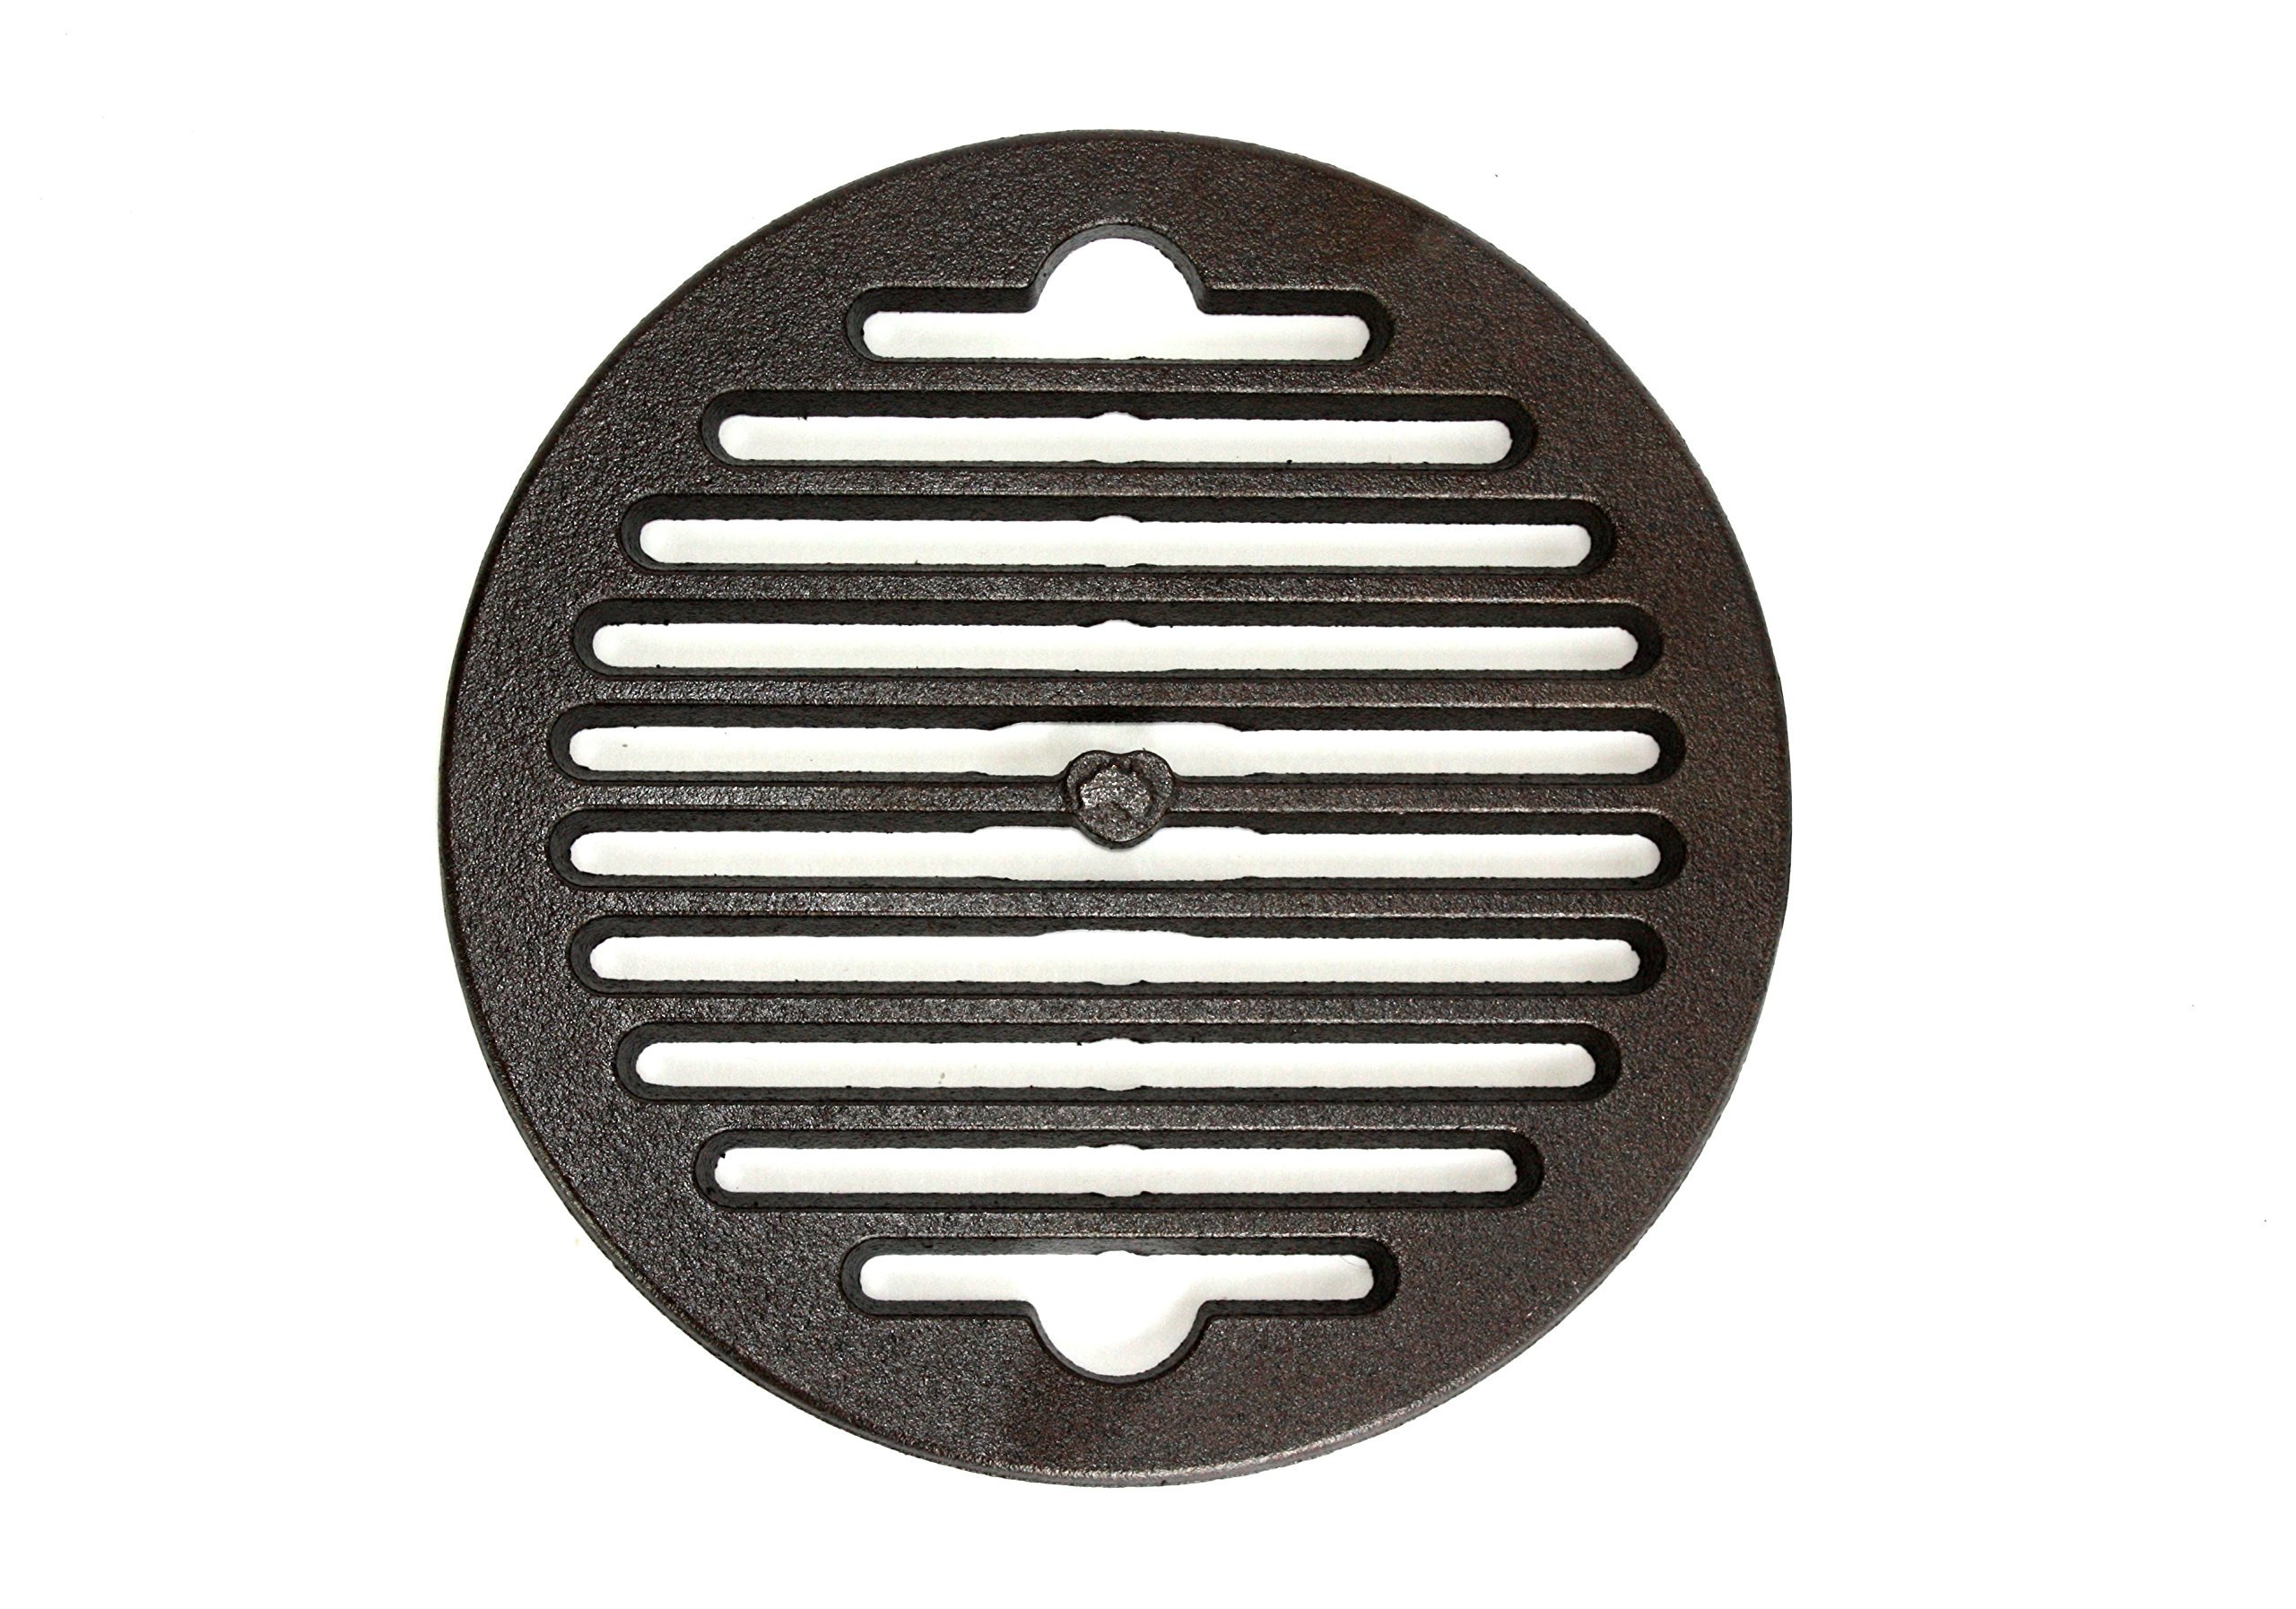 SolidTeknics AUSfonte Tough Love Small 18cm (7.08'') Pan Grill-it Insert